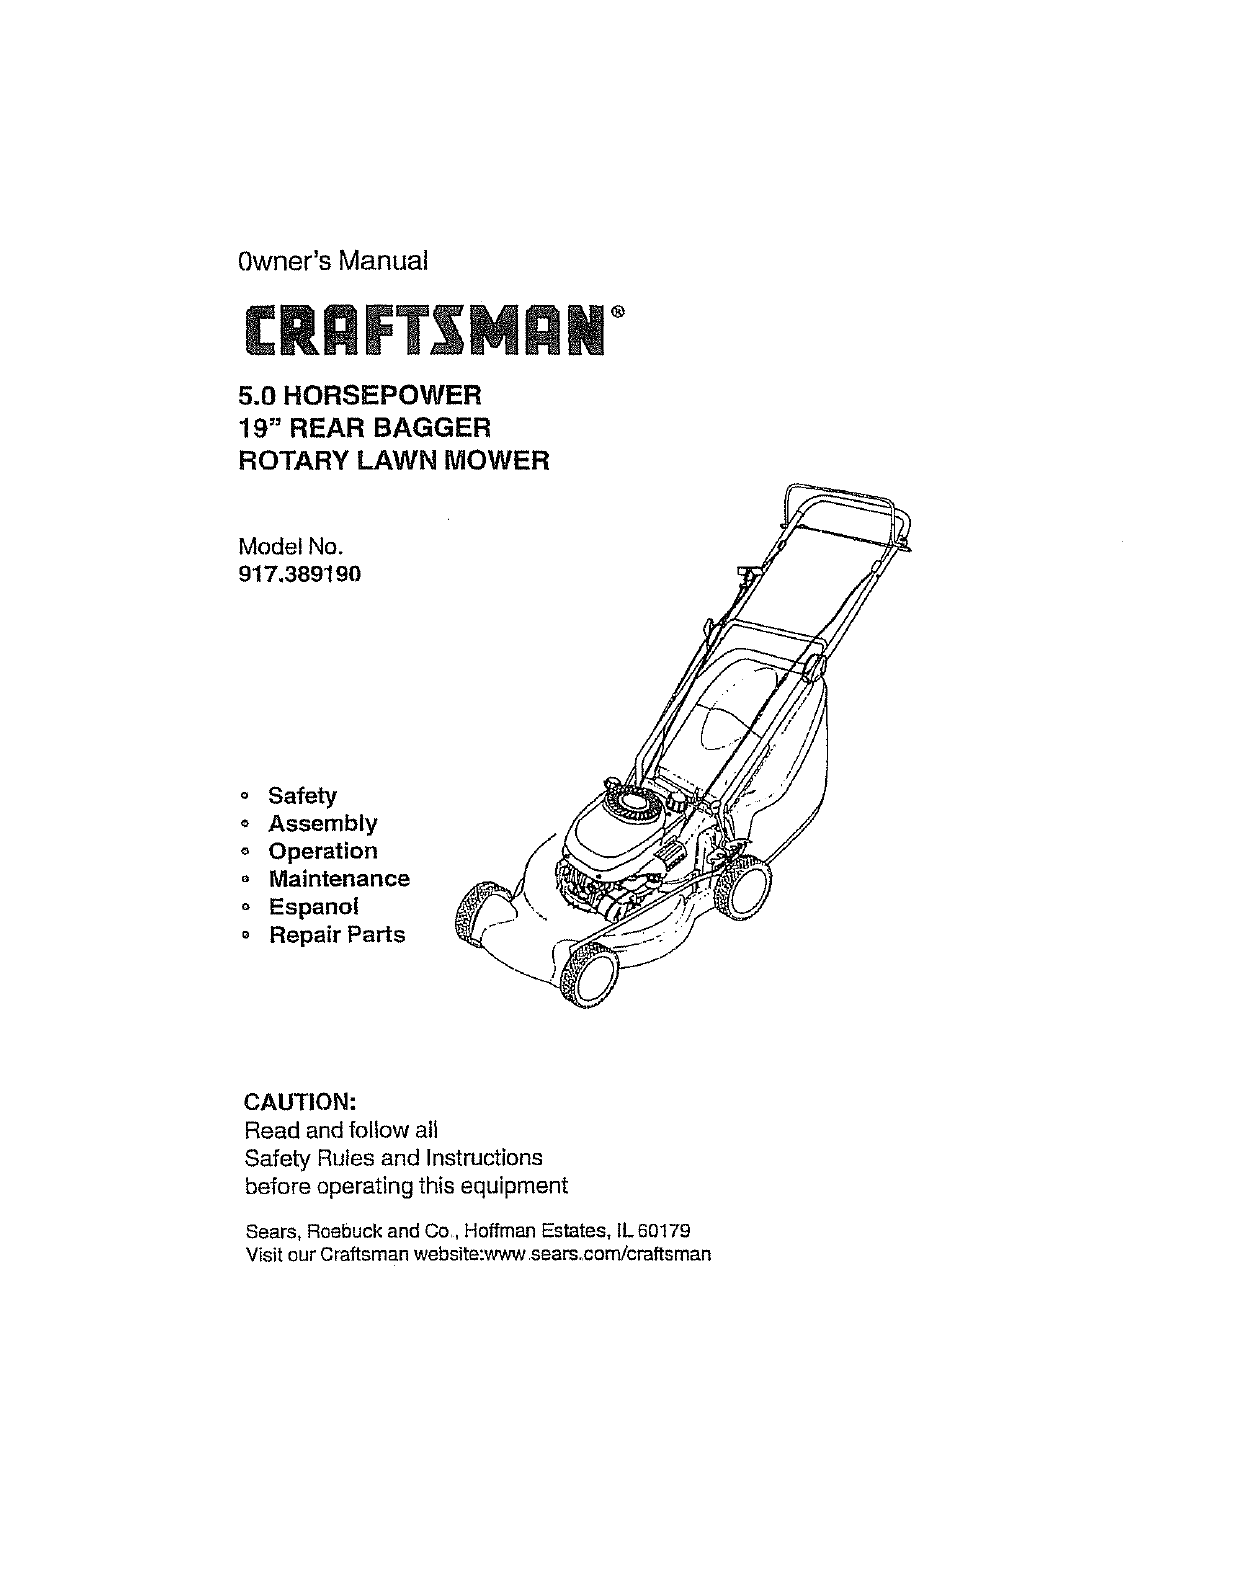 Craftsman Lawn Mower 917.38919 User Guide